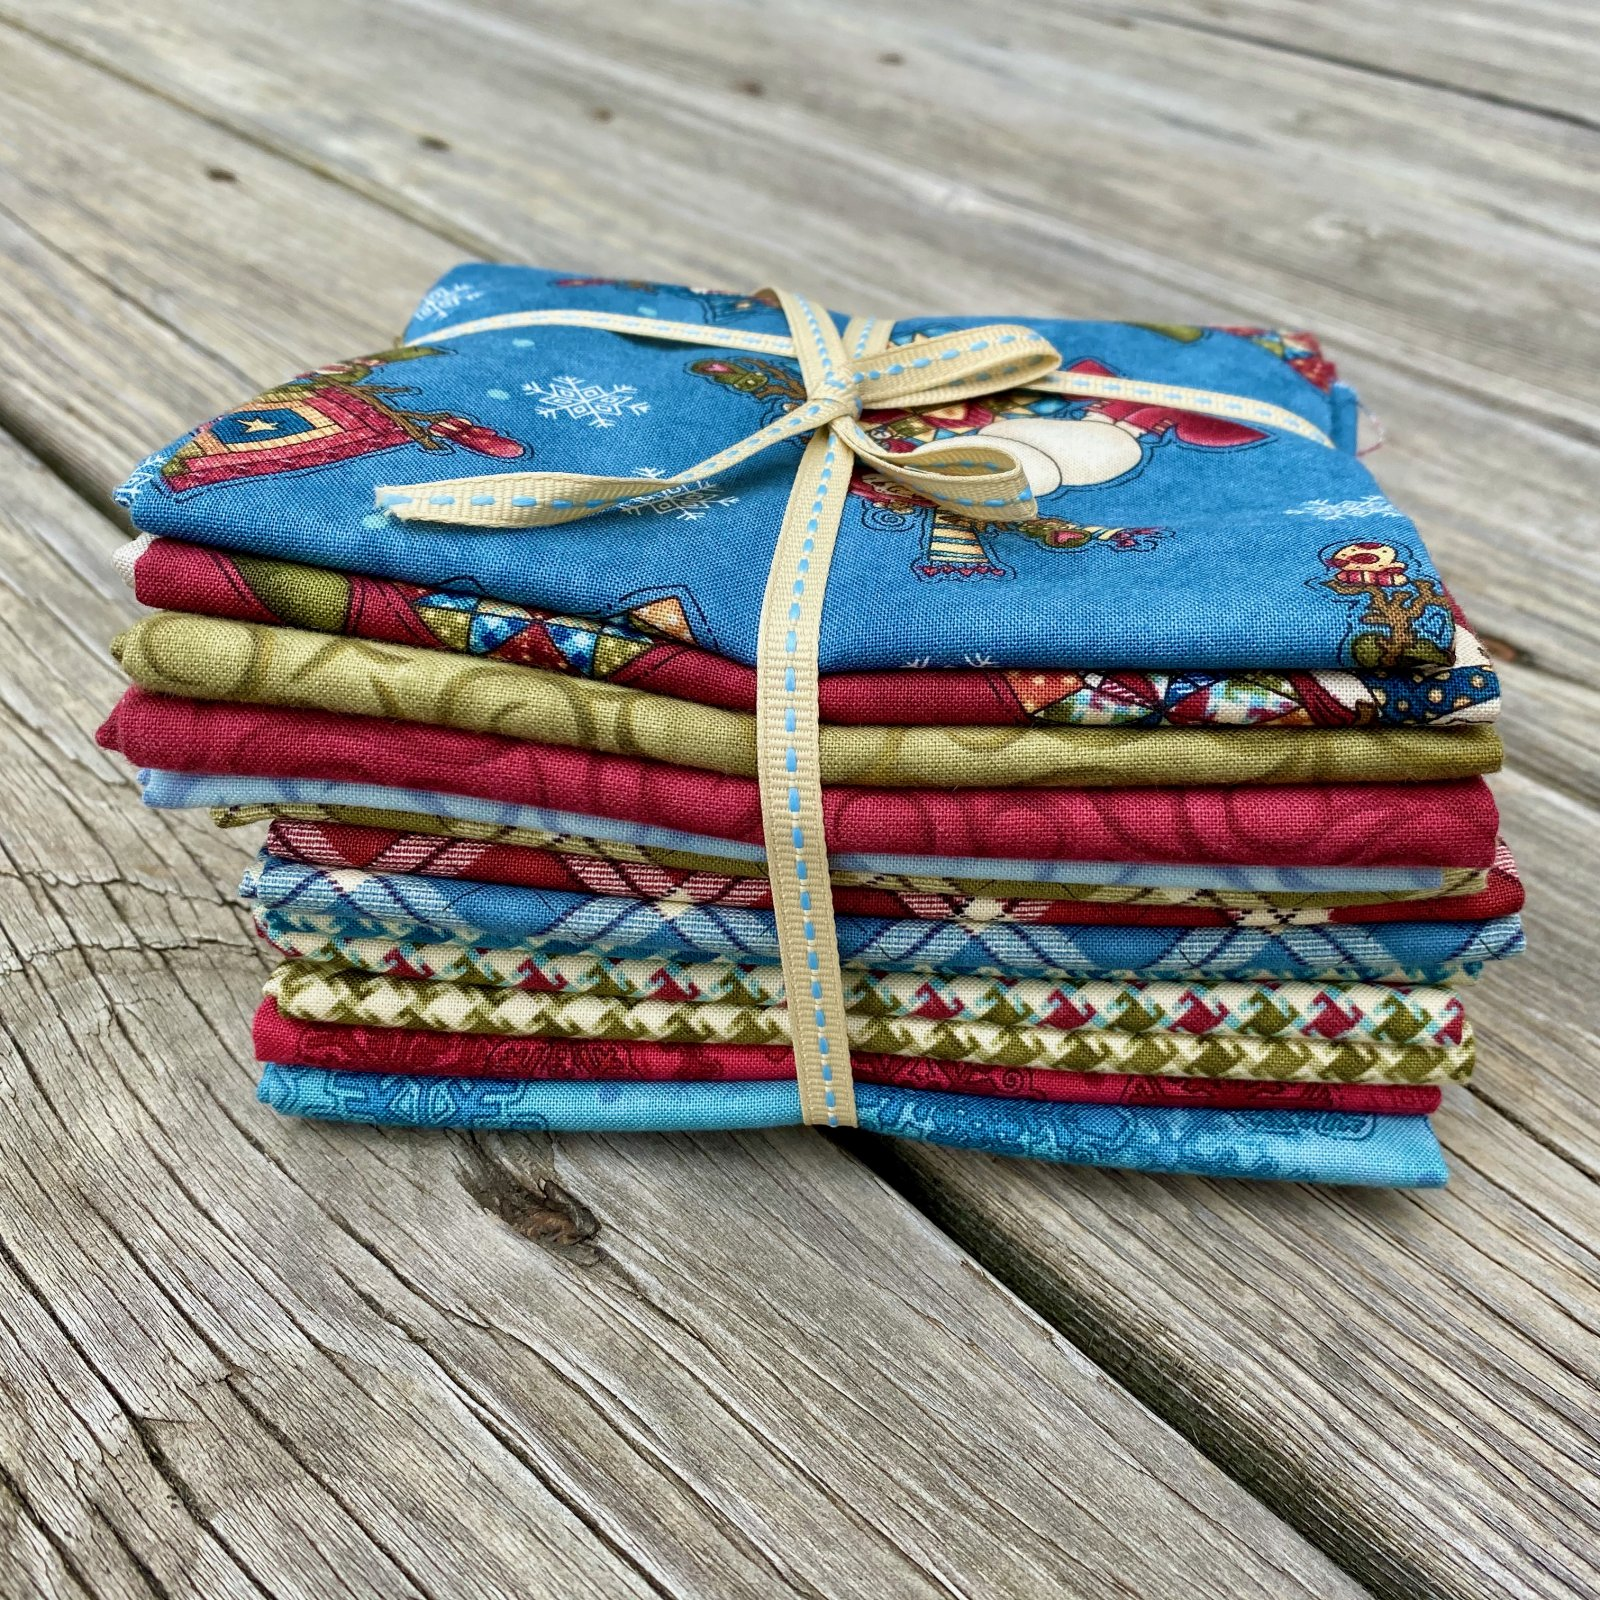 My Precious Quilt Fat Quarter Bundle